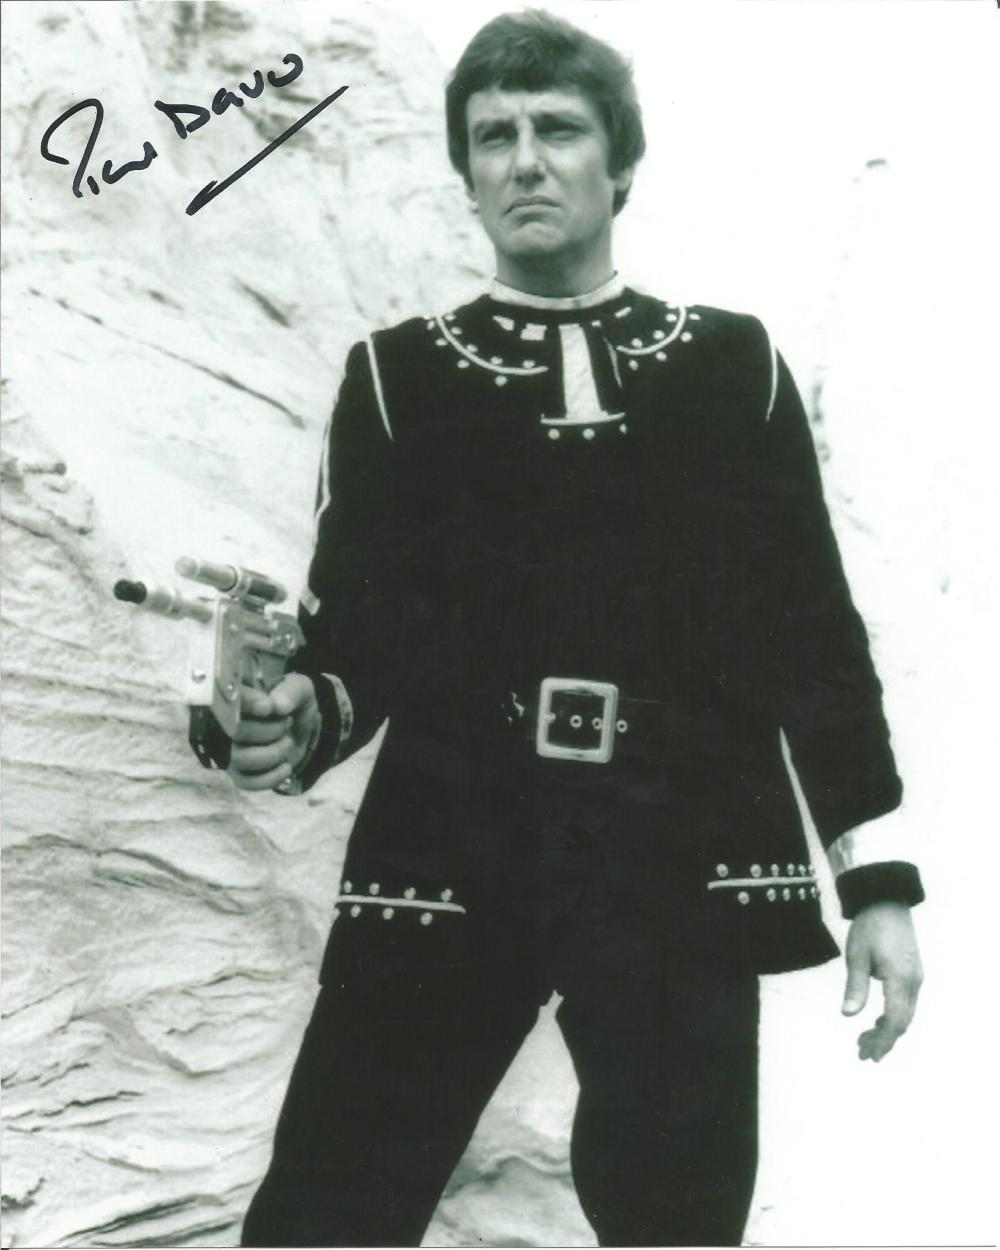 Paul Darrow Blakes 7 hand signed 10x8 photo. This beautiful hand-signed photo depicts Paul Darrow as